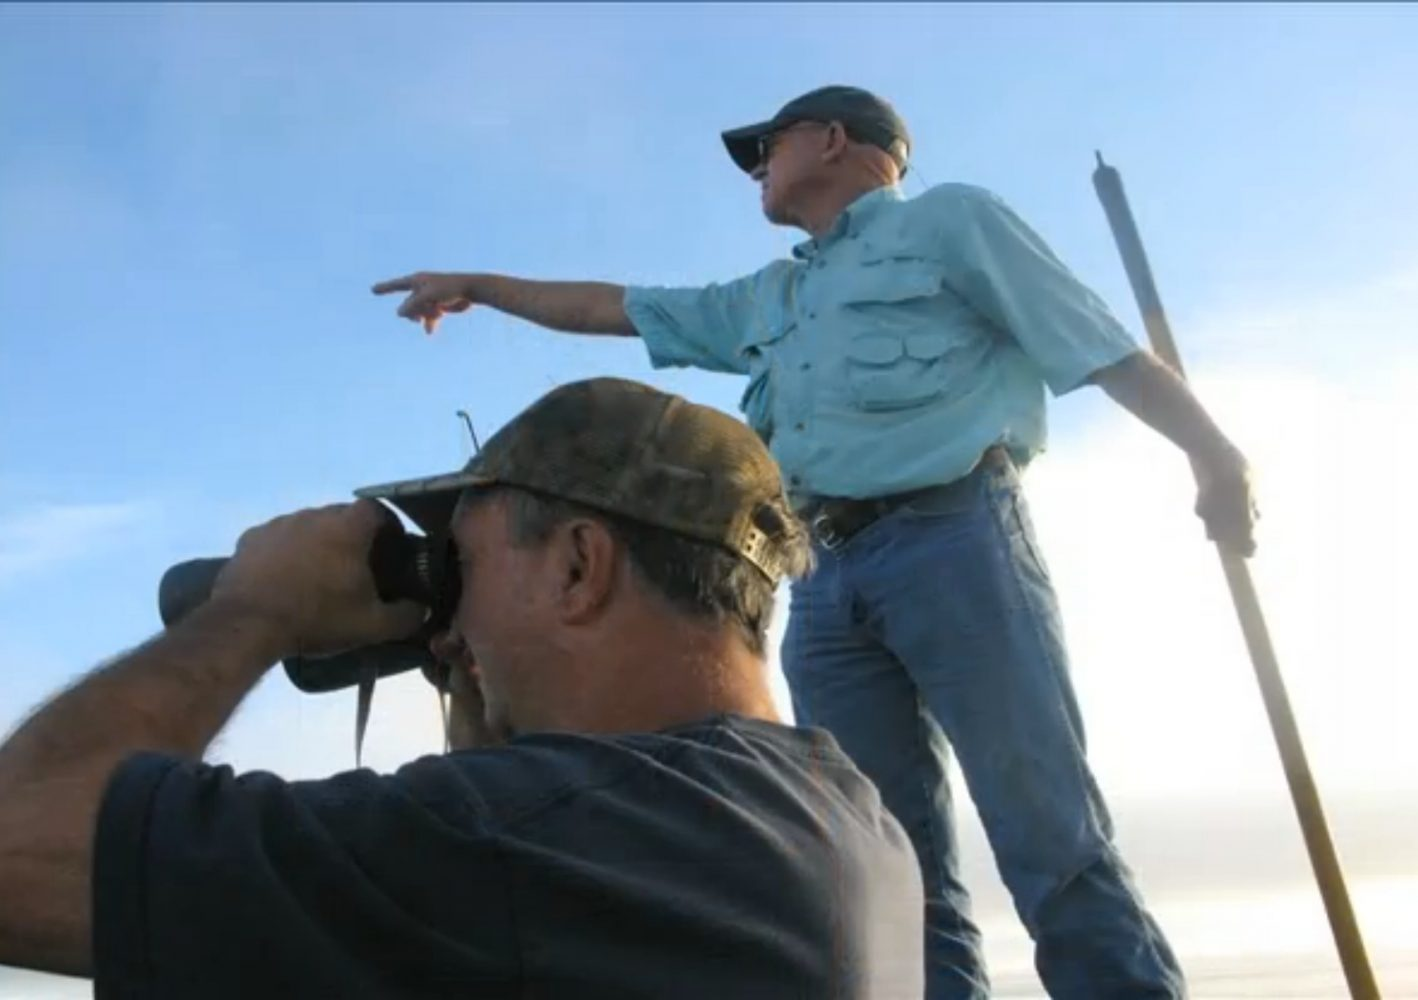 Bass points to the gator he has spotted.  John Kurtz looks through binoculars to decide if the alligator is large enough to go after.